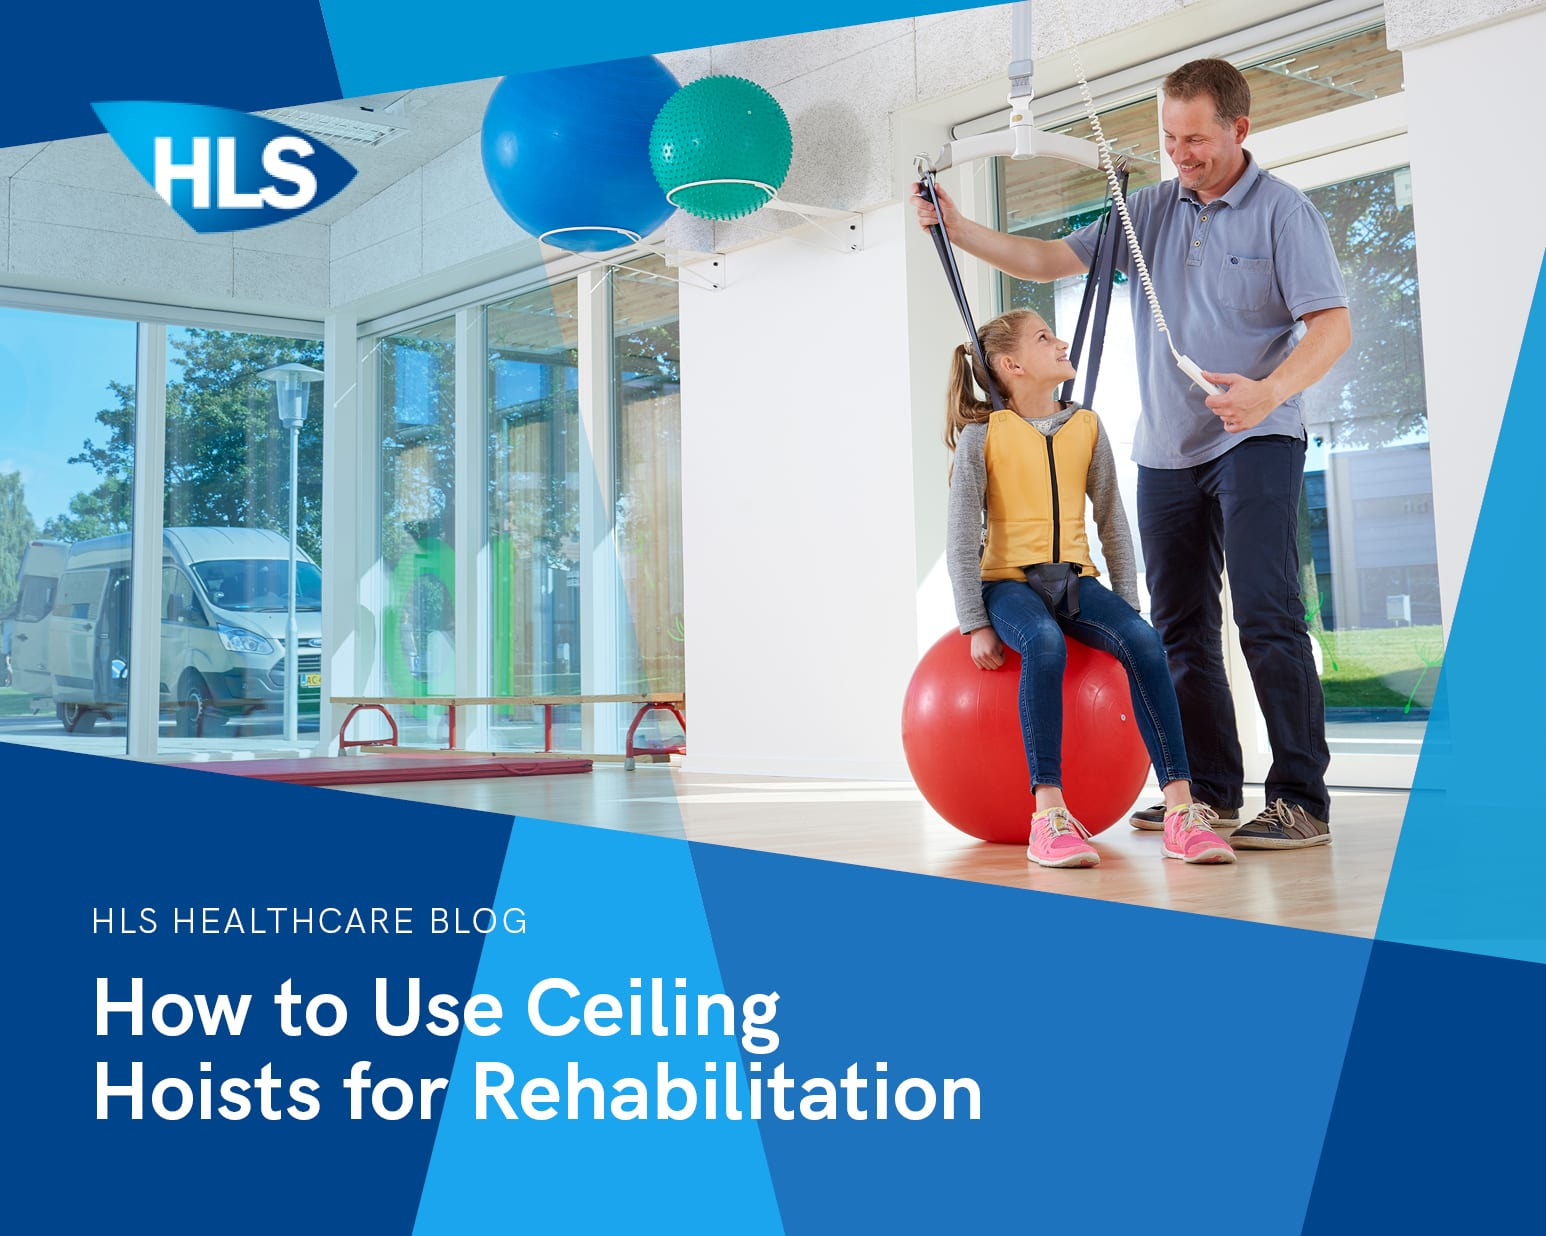 How to Use Ceiling Hoists for Rehabilitation